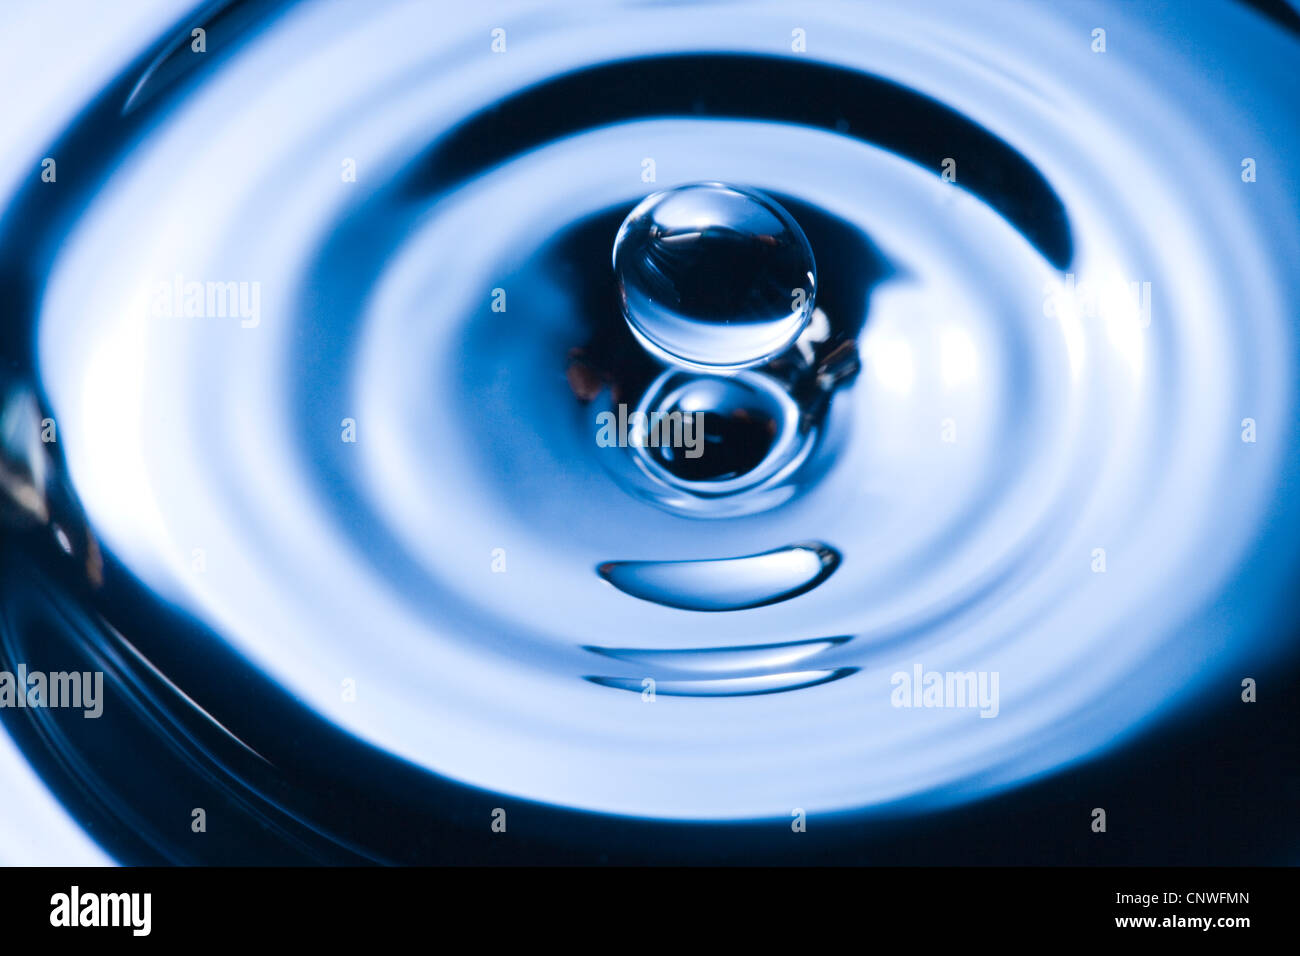 Water droplet causing ripples. Stock Photo